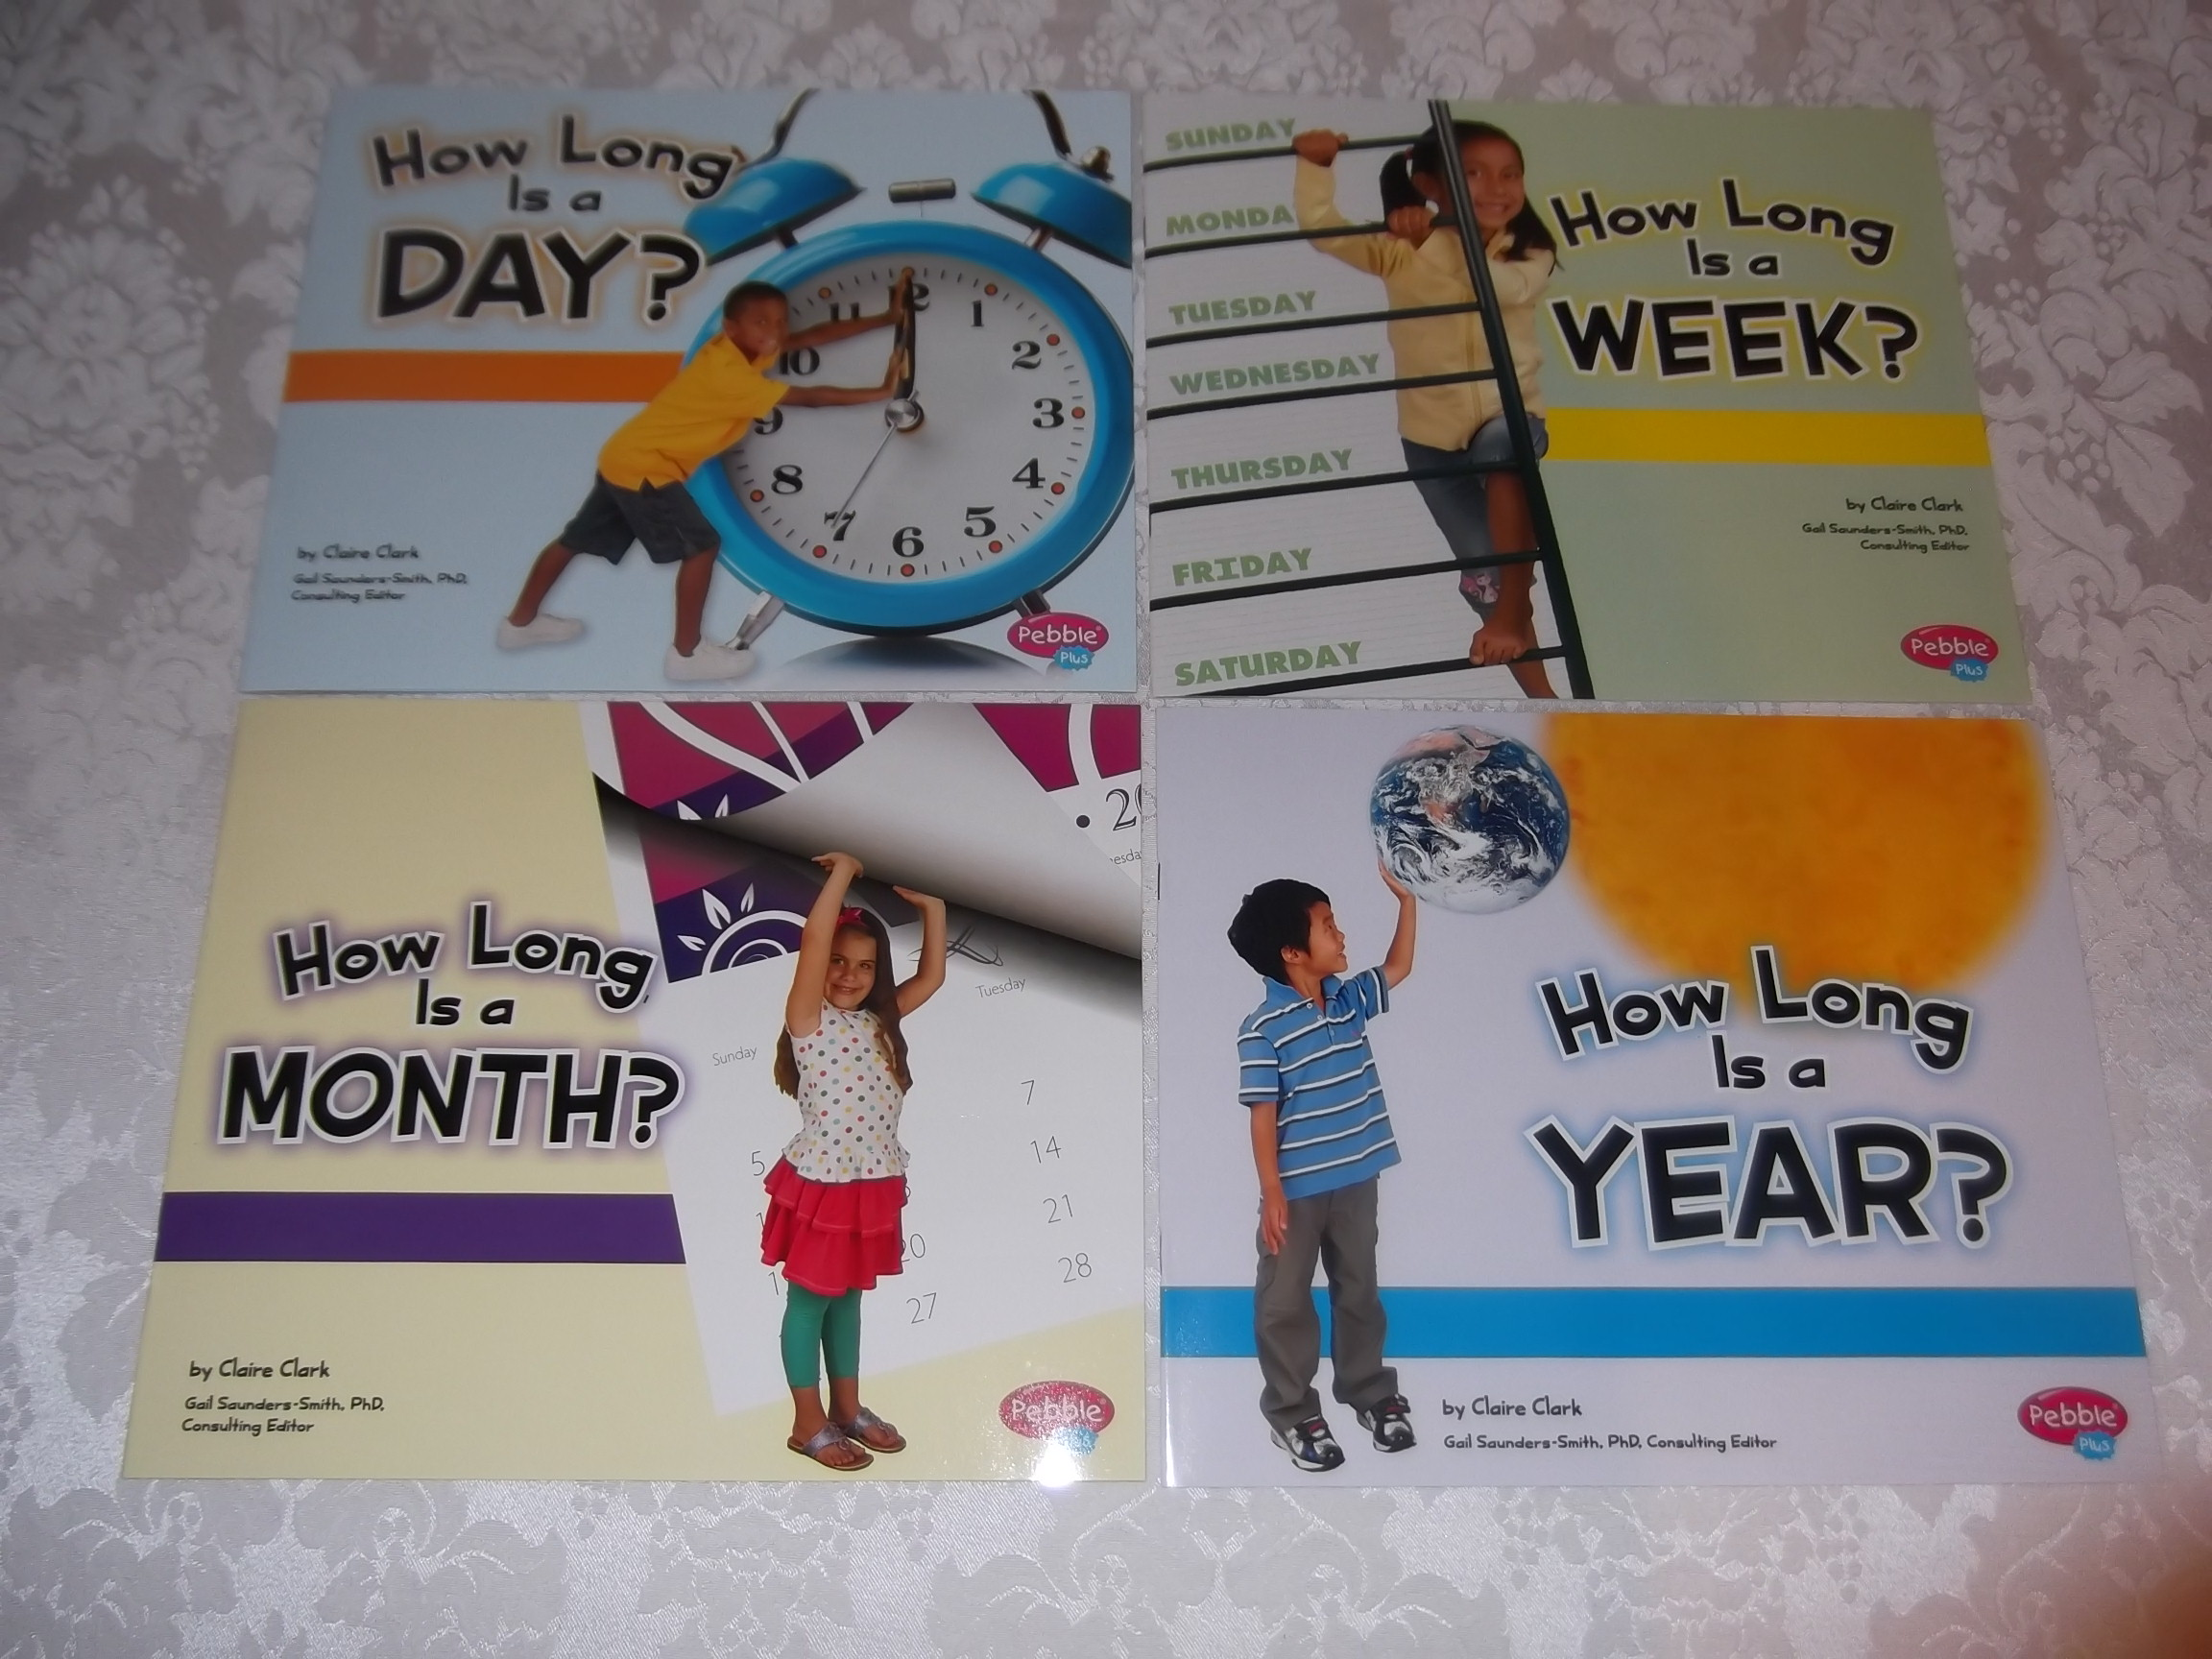 how long is a day  week  month  year  claire clark brand